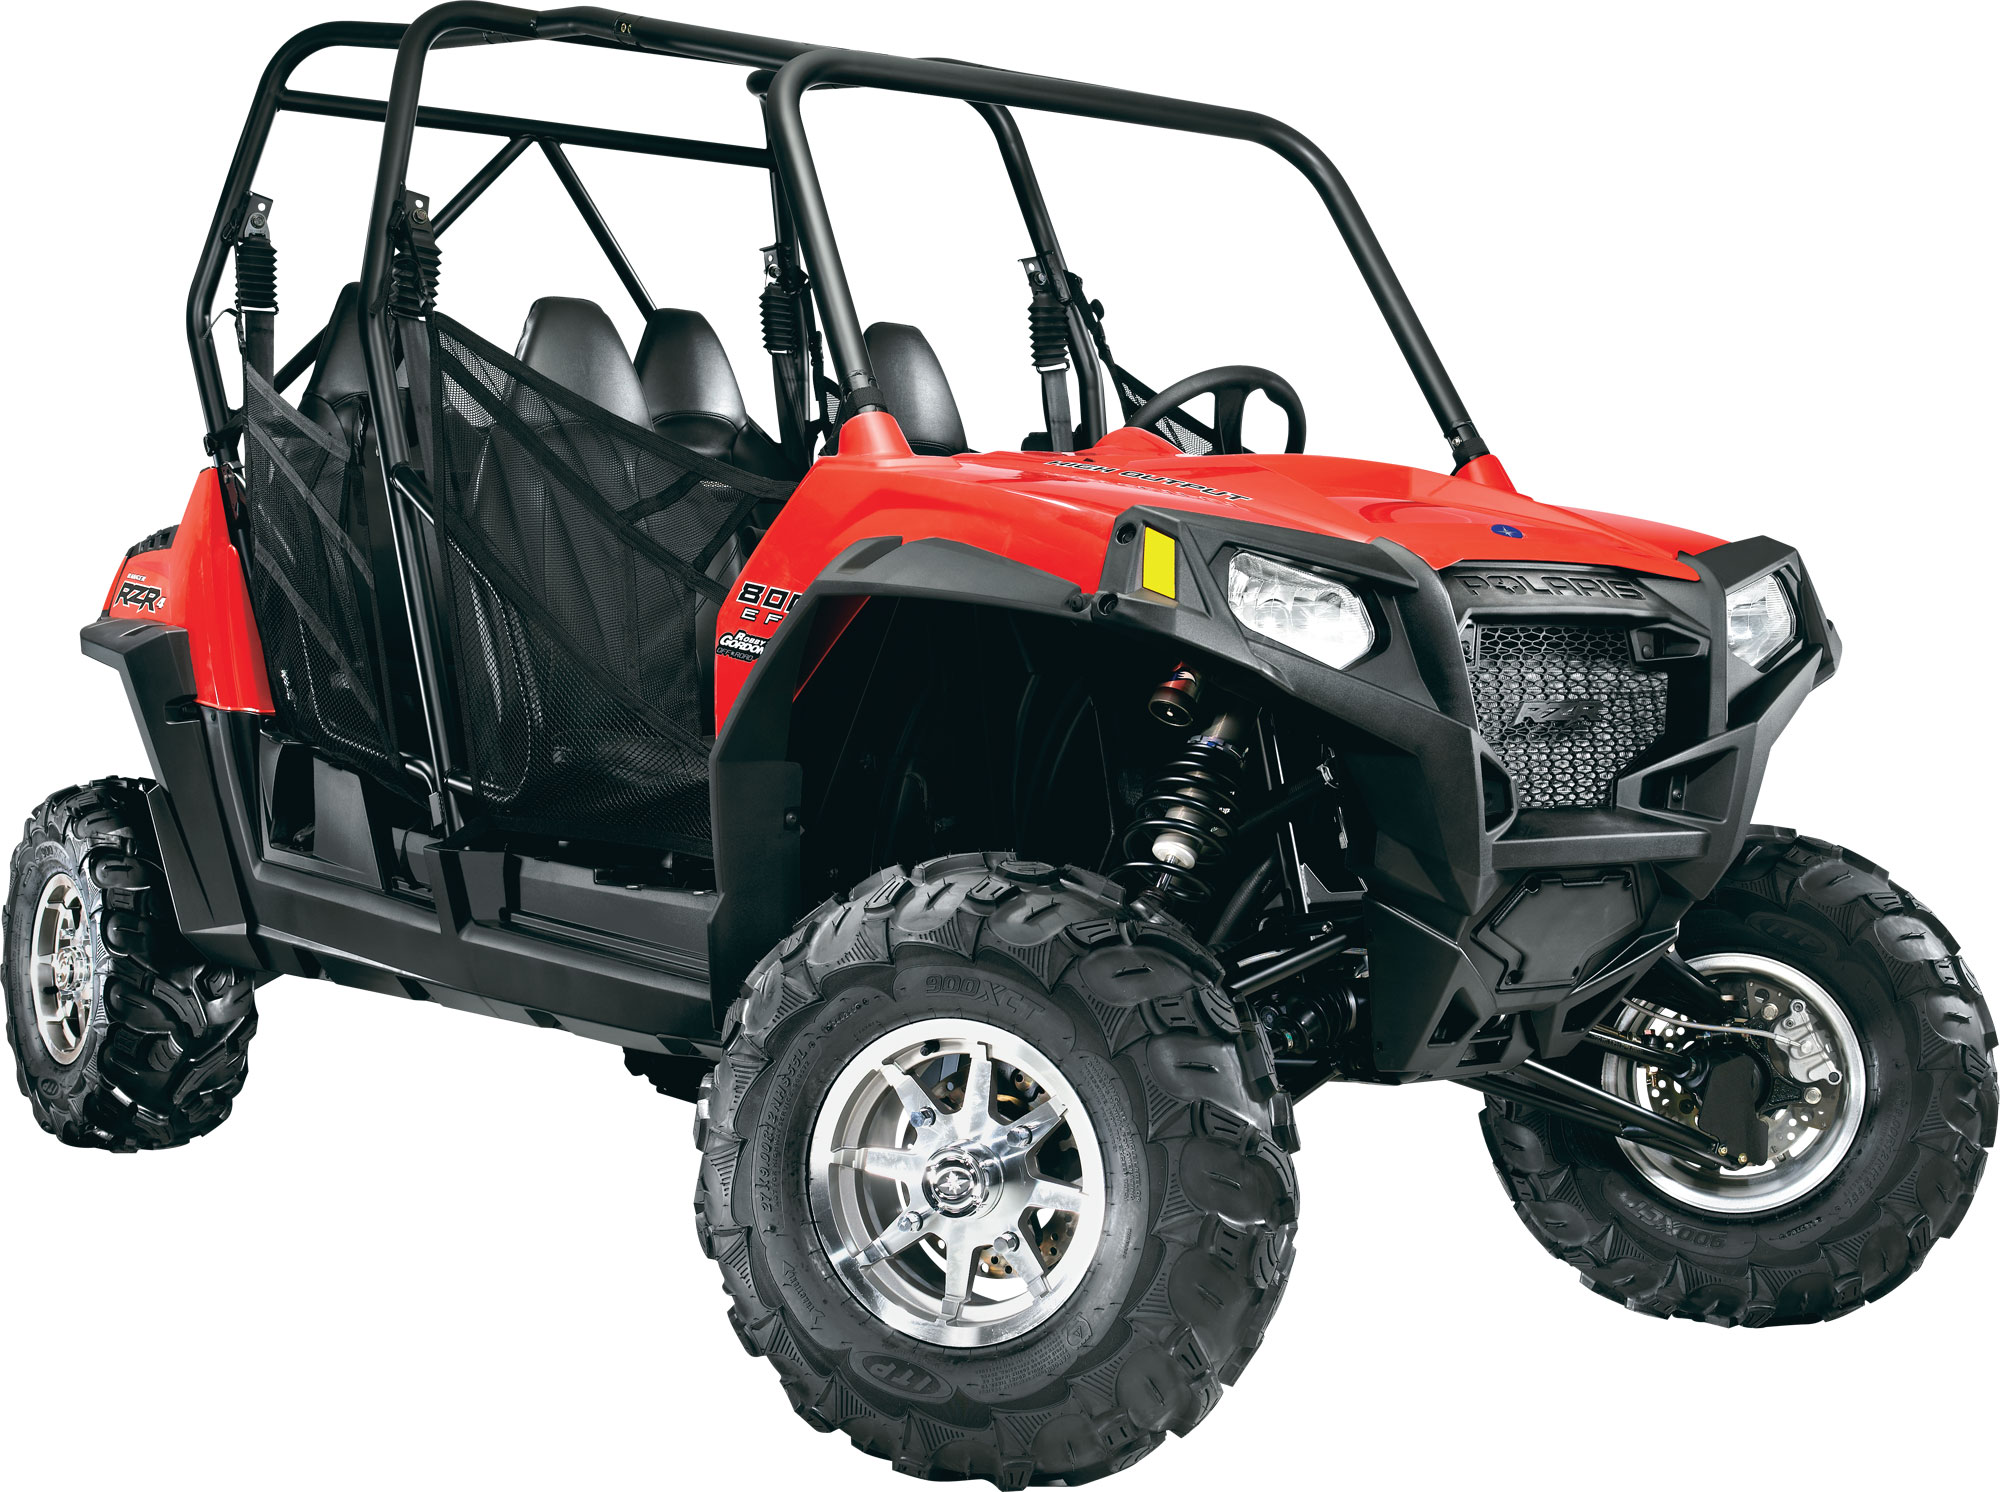 hight resolution of  polaris rzr 4 800 robby gordon edition 2011 2012